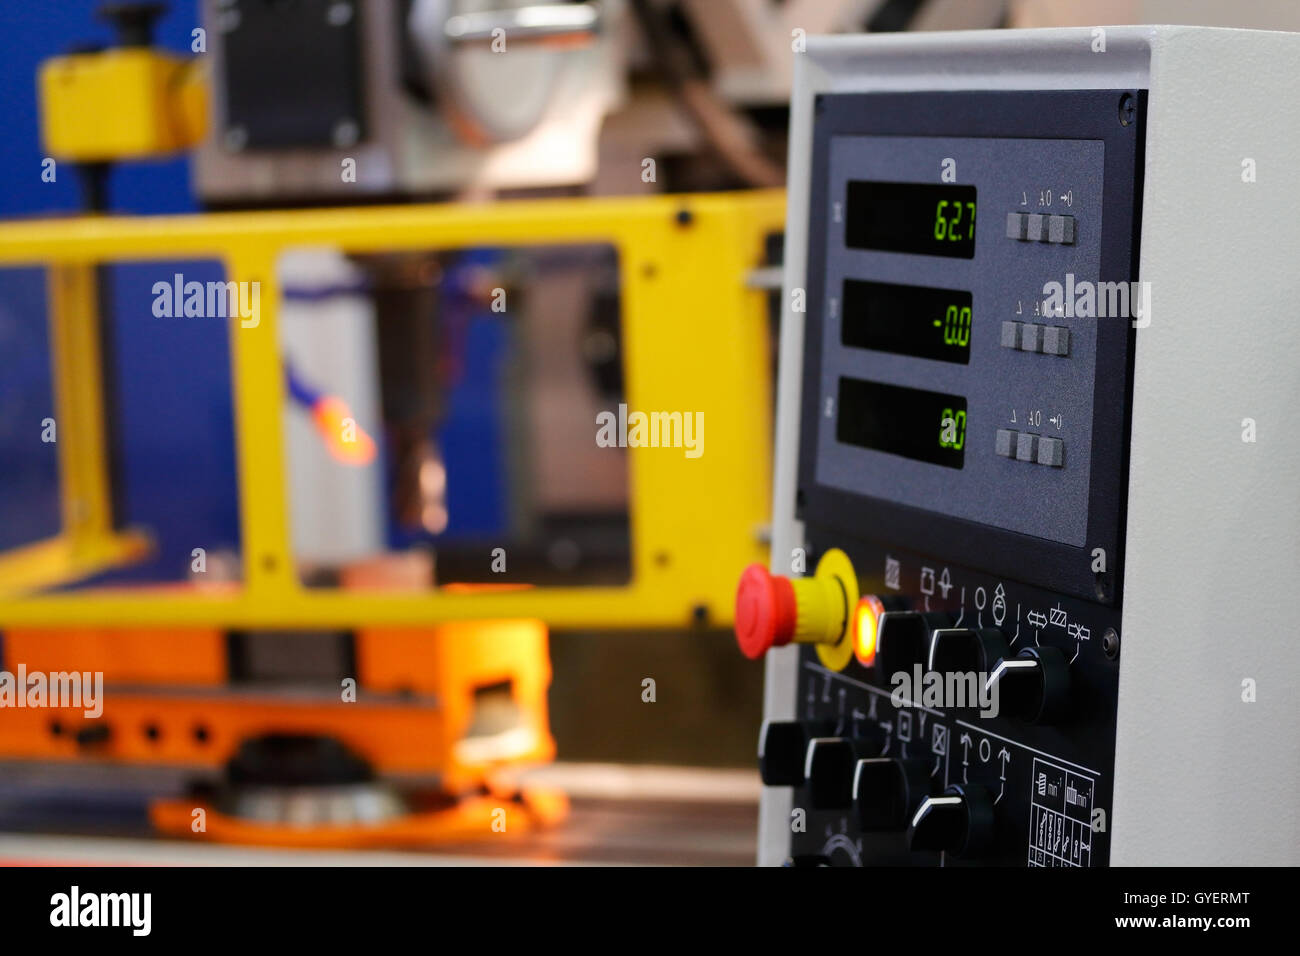 Vertical CNC machining center with control panel on the foreground. - Stock Image